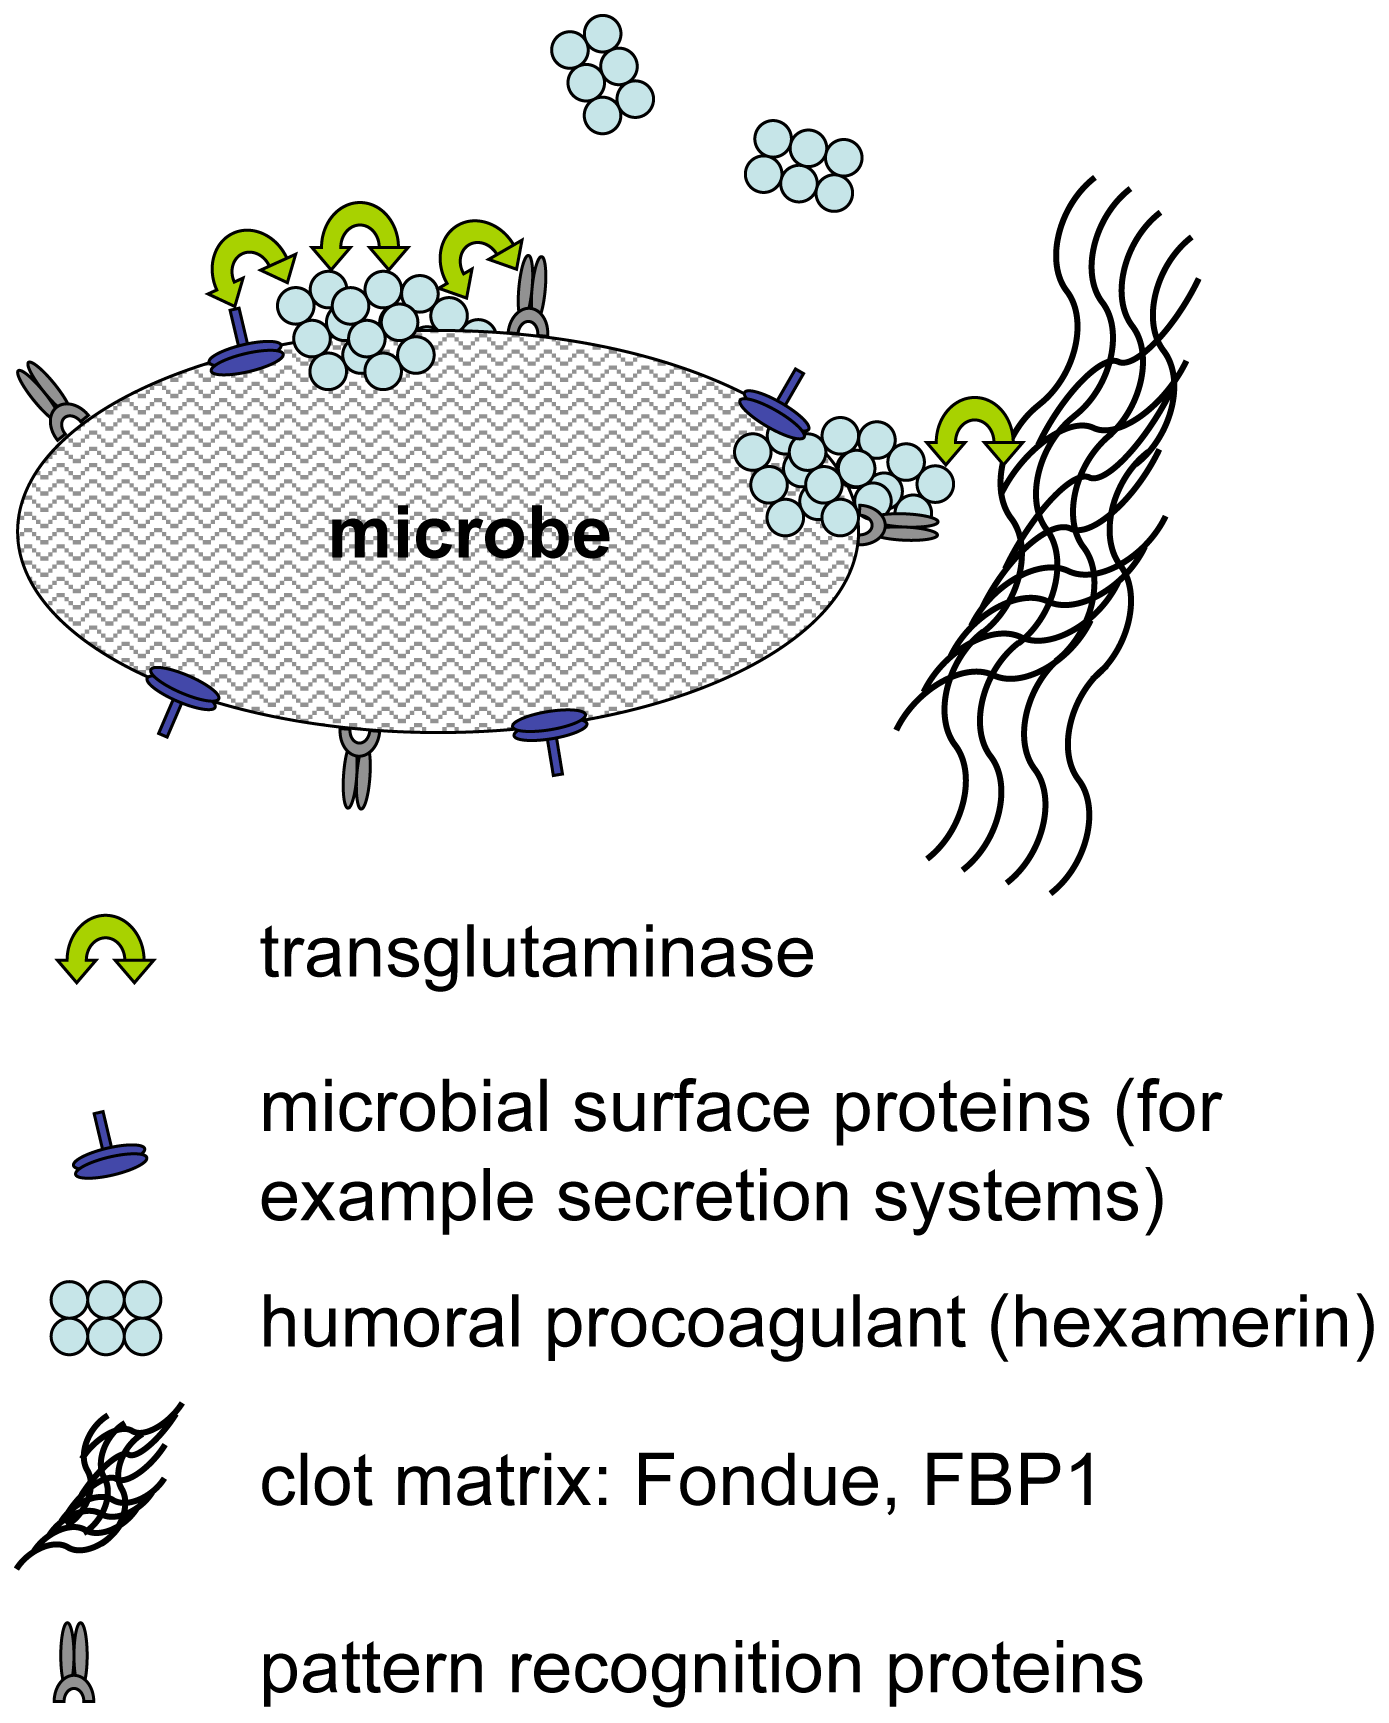 Hypothetical mechanisms for transglutaminase-mediated sequestration of microbes by the clot matrix.